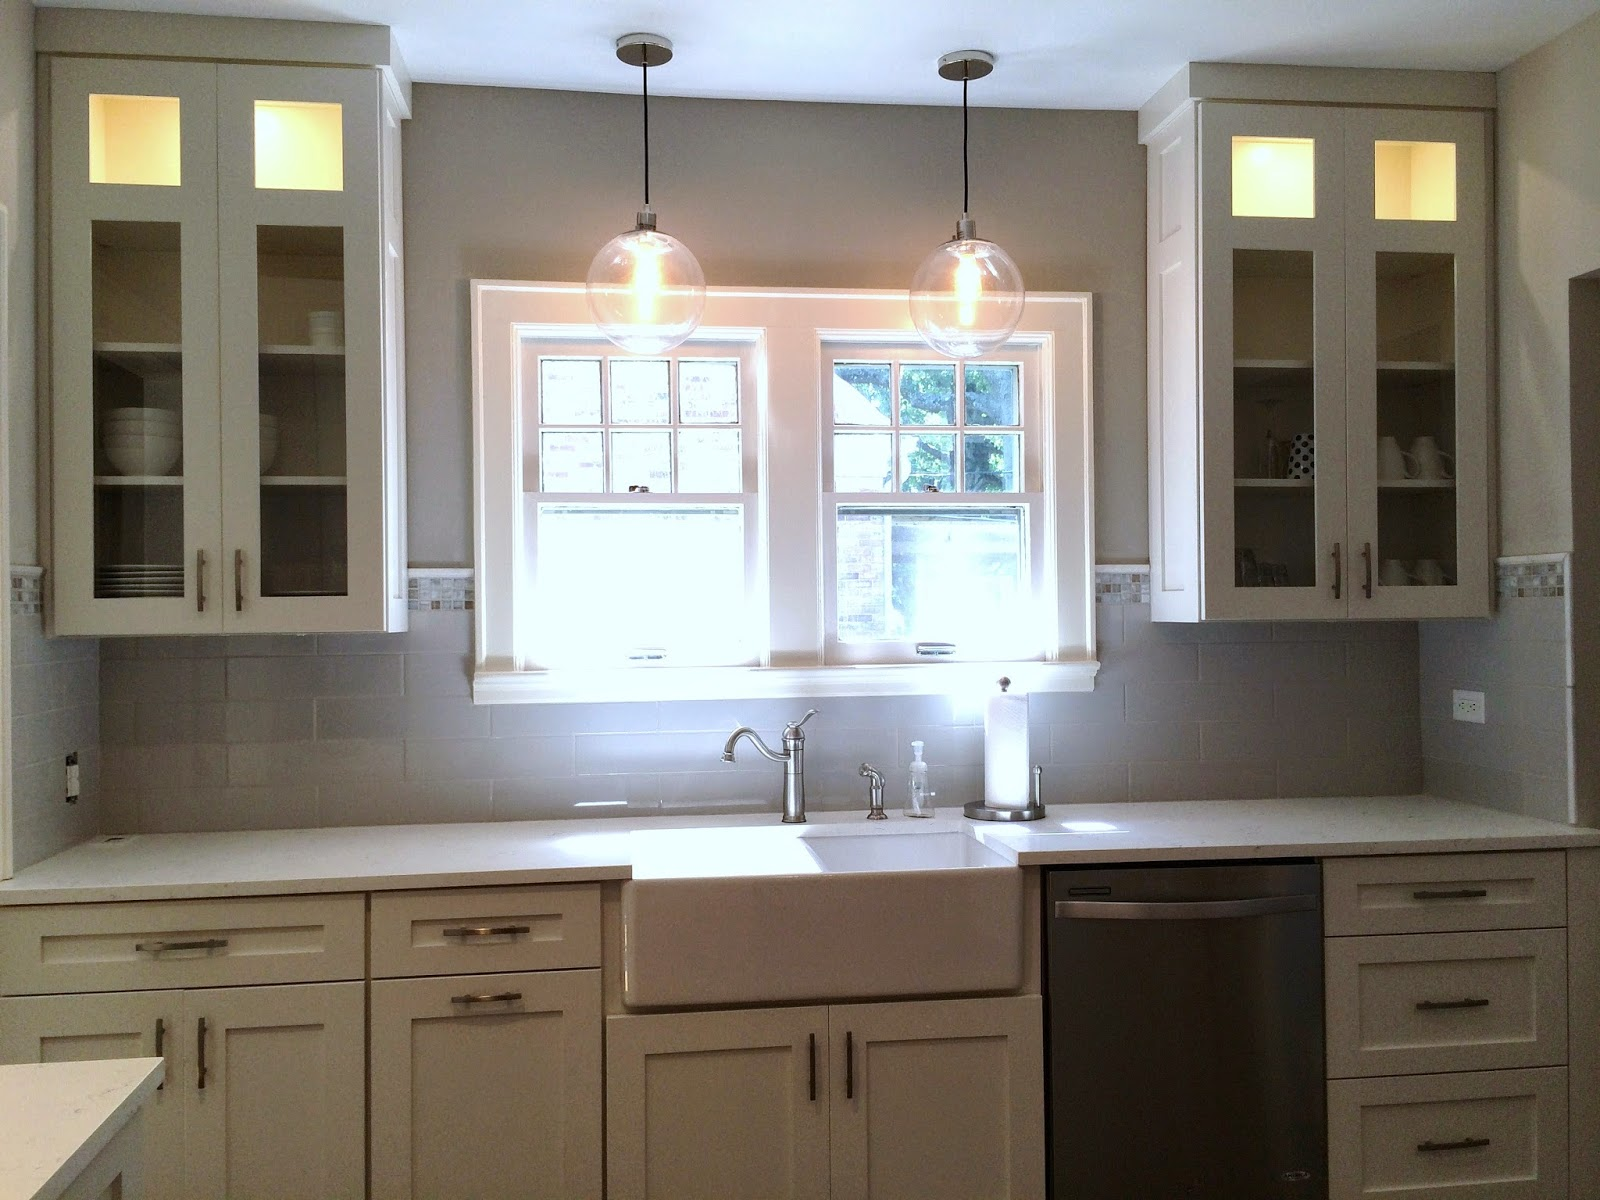 Kitchen Cabinets To Ceiling With Glass Bungalow Kitchen Reveal Elz Design